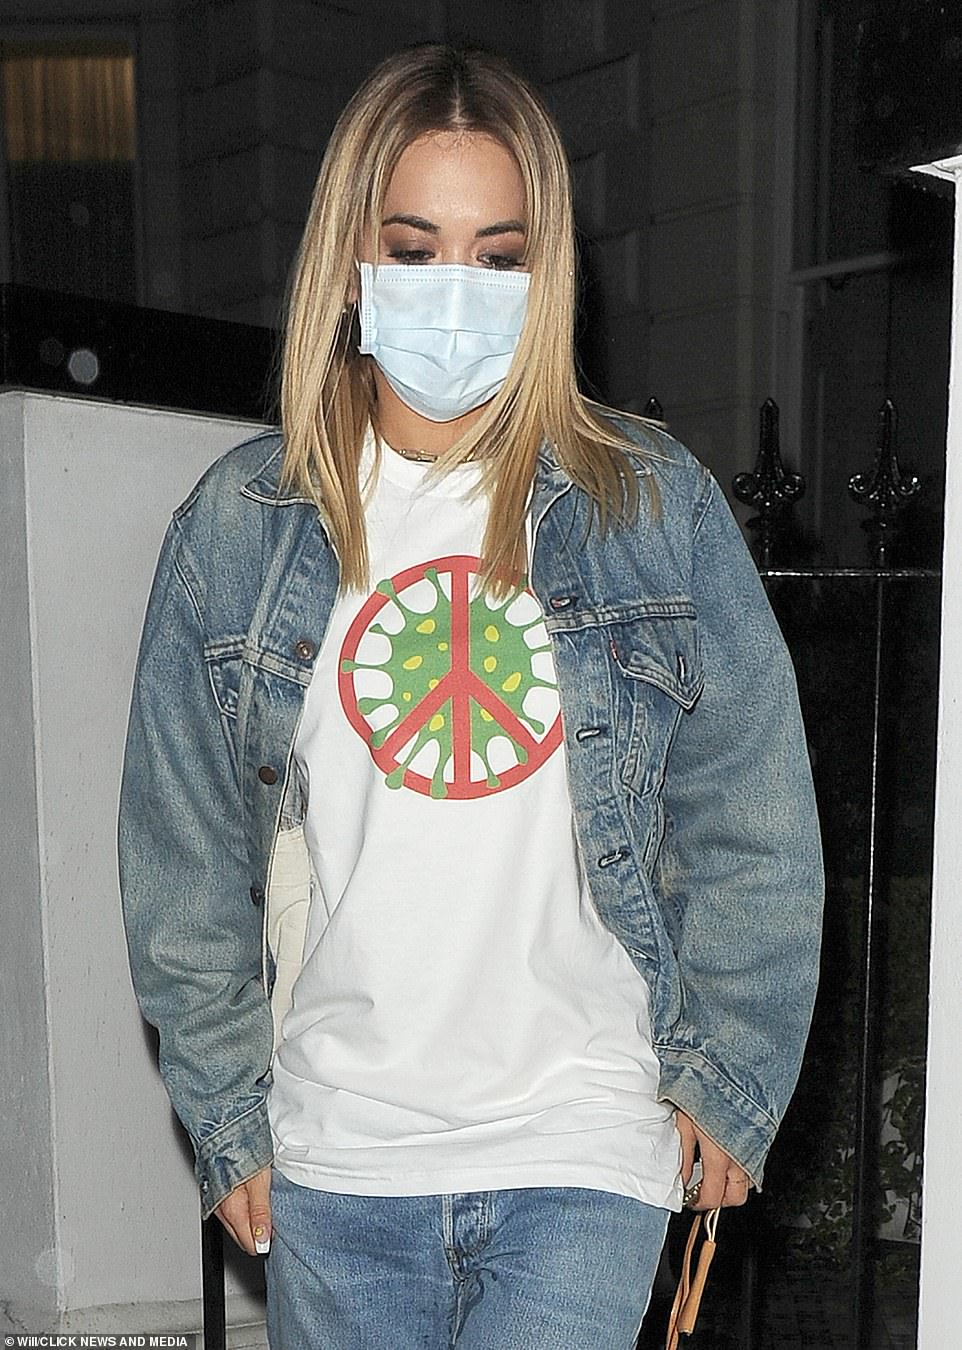 Ora urged people to 'stop the spread' of coronavirus when she stepped out wearing a self-designed motif T-shirt in March